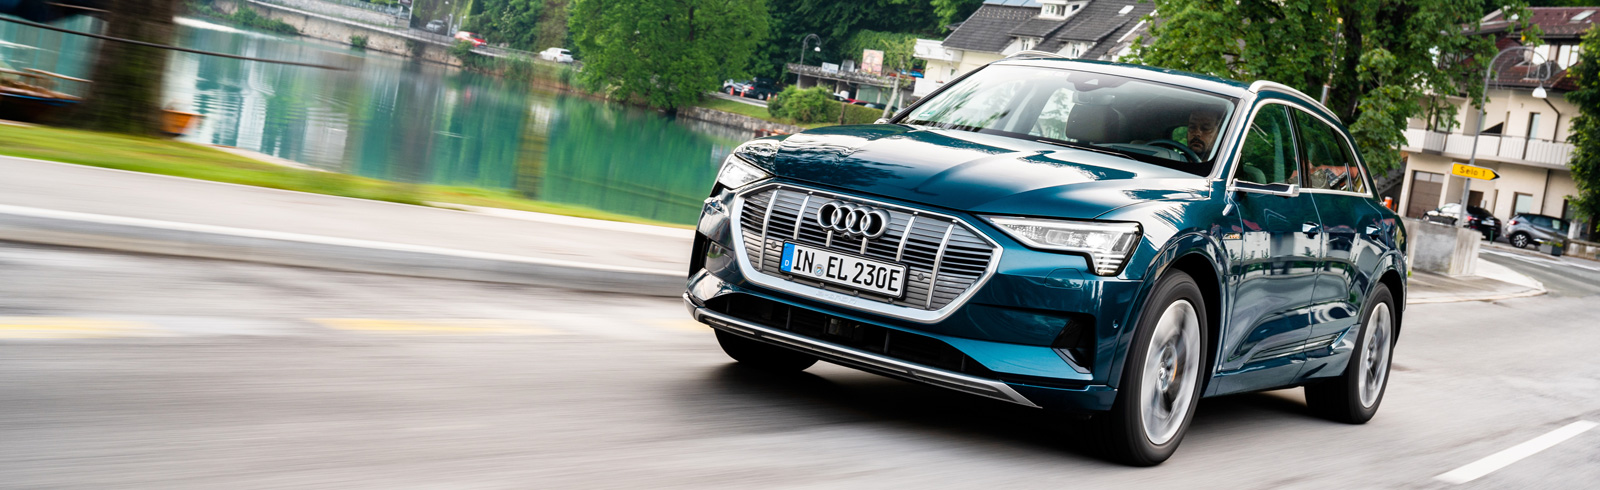 Audi announces MY 2022 updates for the e-tron and e-tron Sportback with increased options